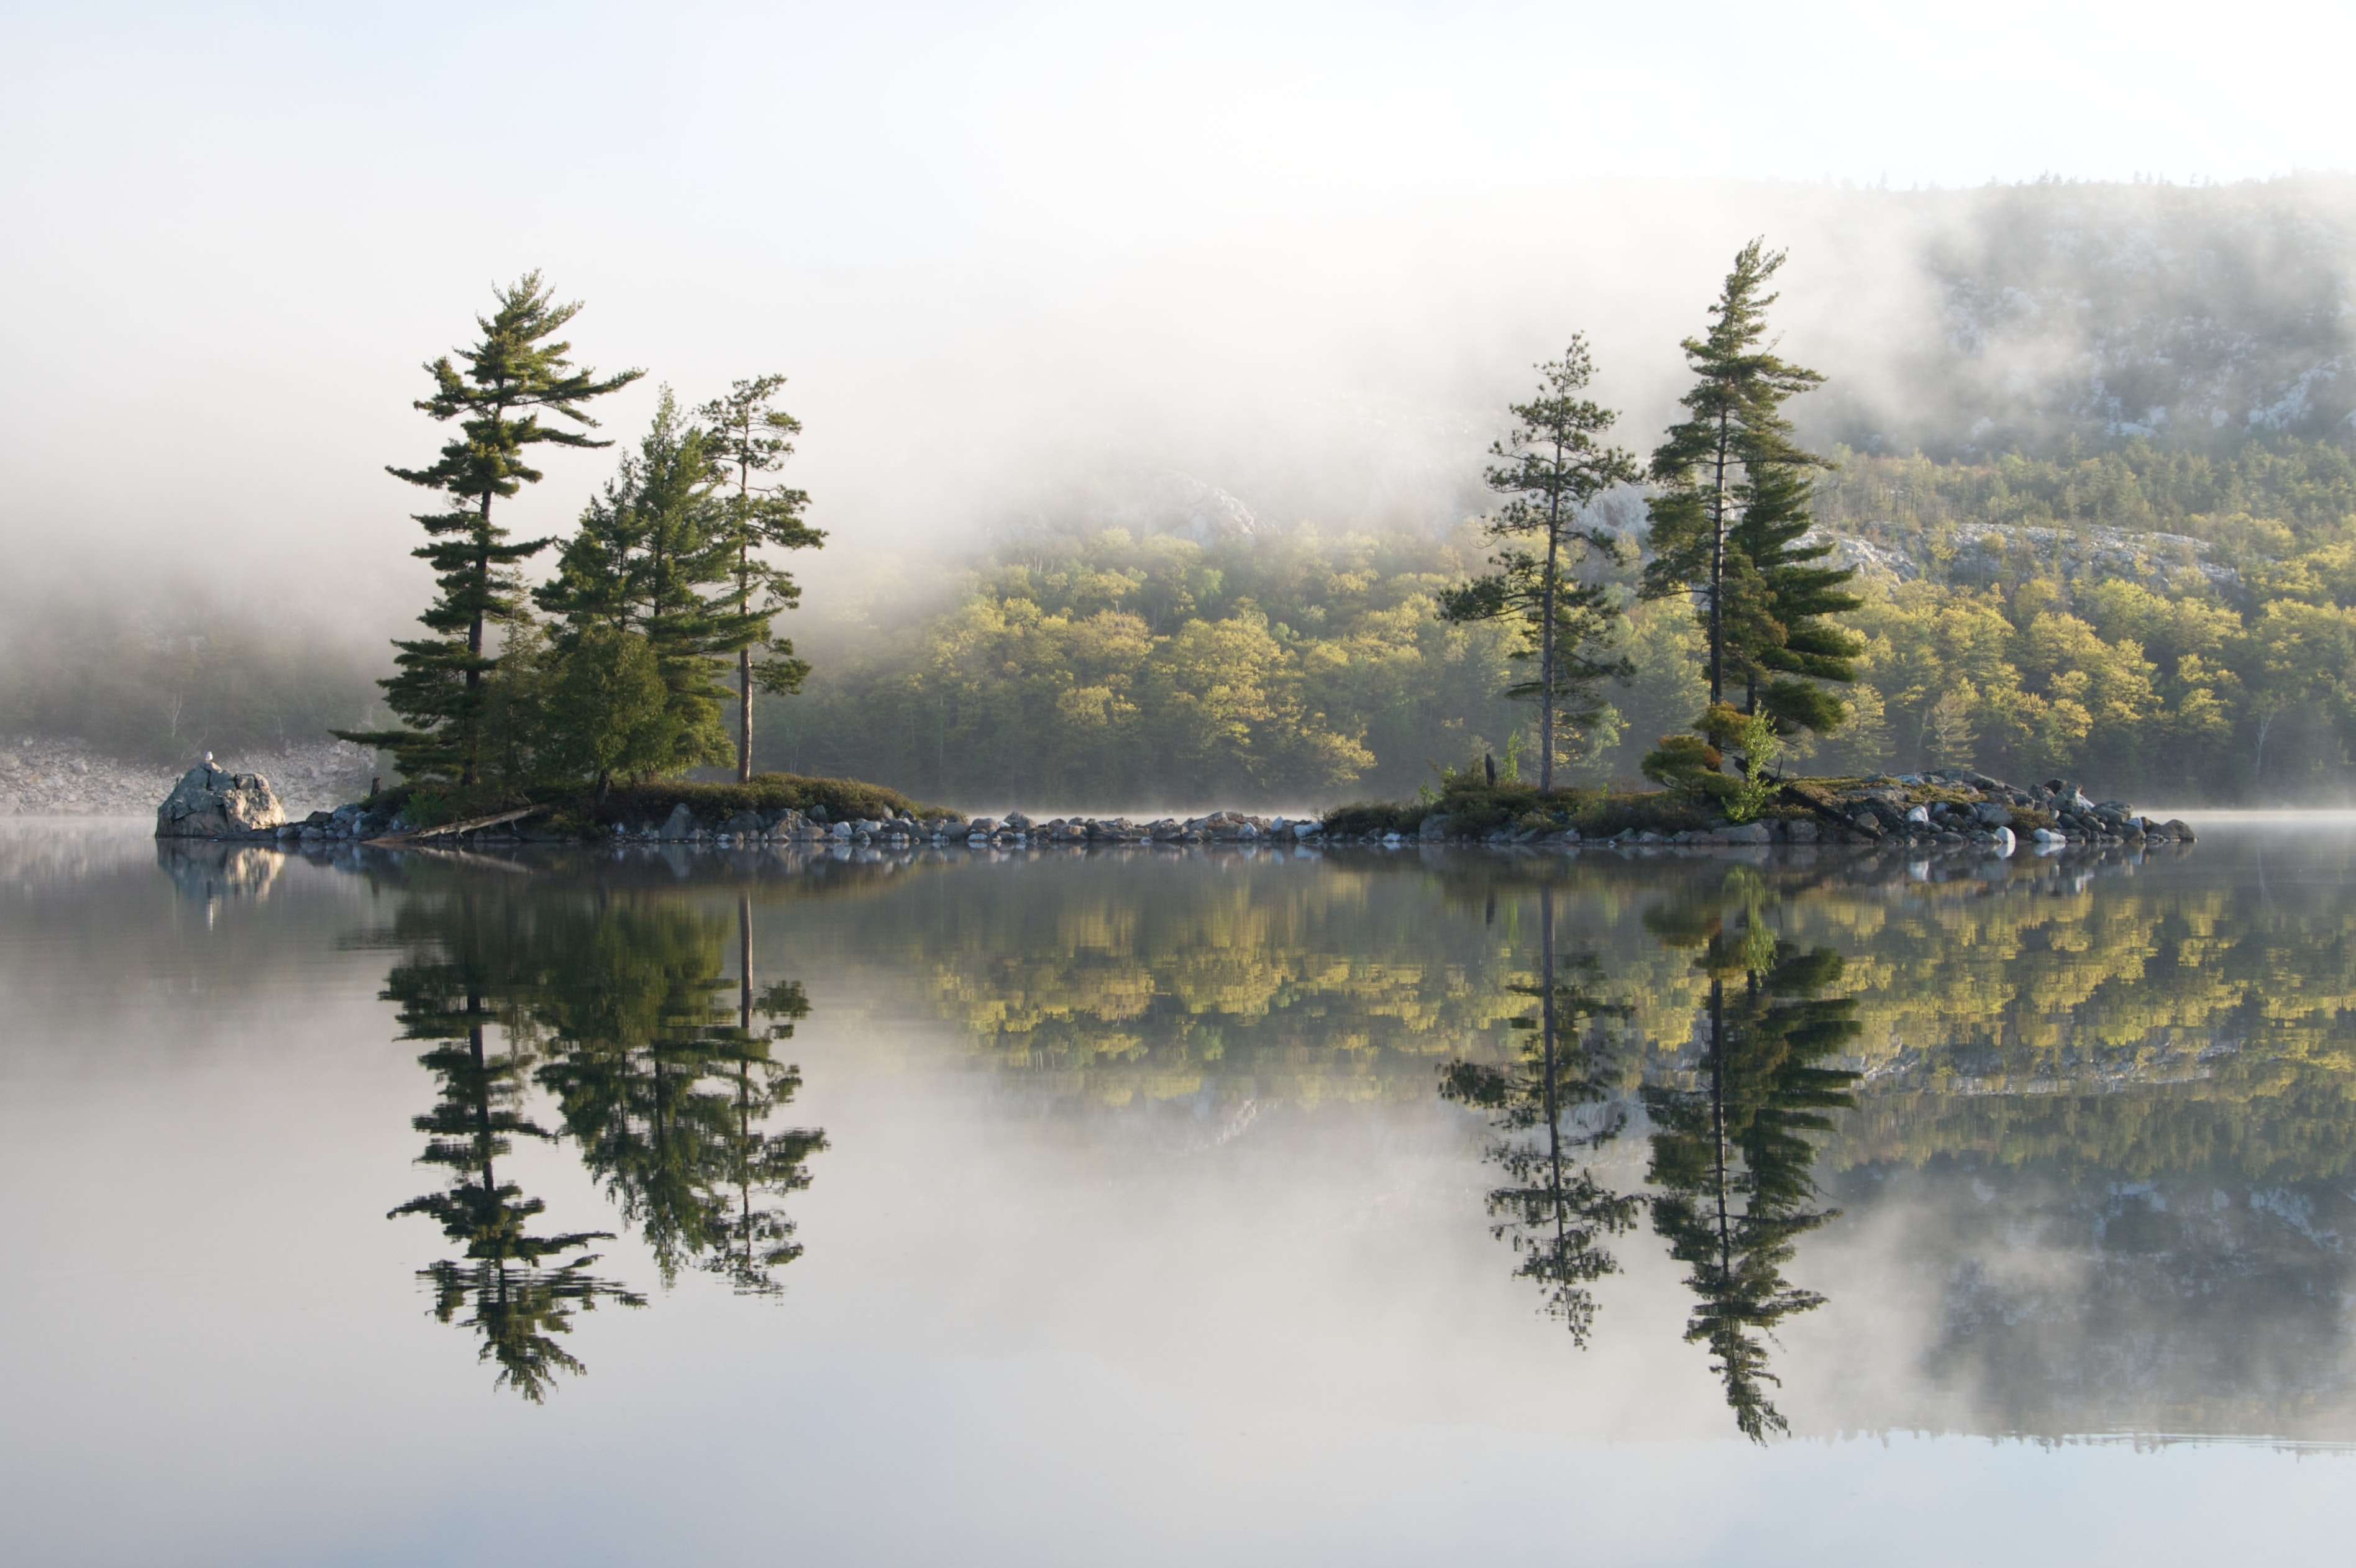 reflective photography of trees on islet near body of water